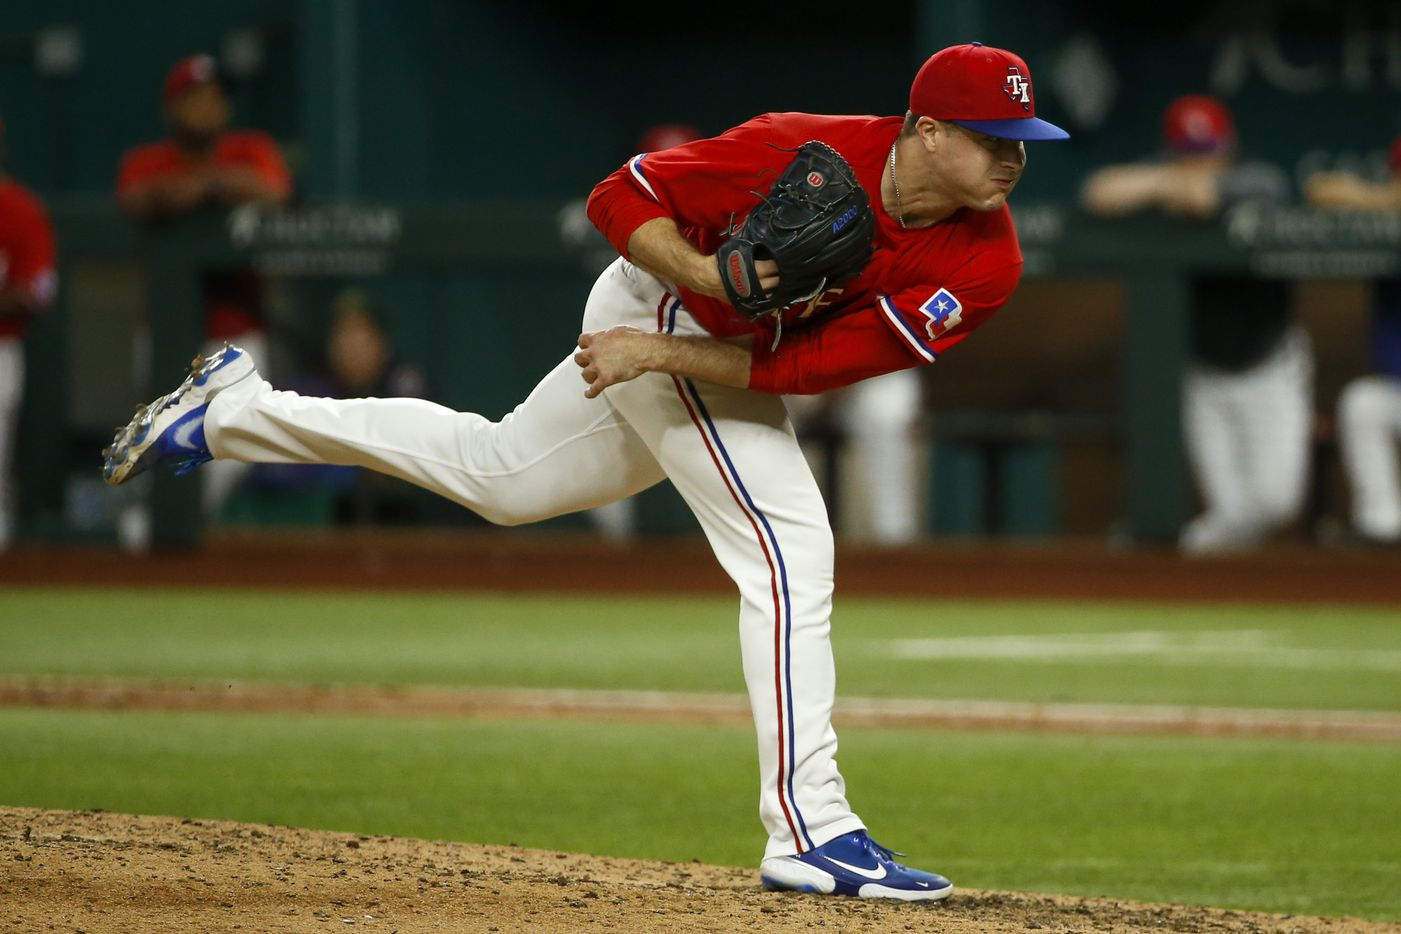 Texas Rangers relief pitcher John King (60) throws the ball during the eighth inning against the Kansas City Royals at Globe Life Field on Friday, June 25, 2021, in Arlington. (Elias Valverde II/The Dallas Morning News)